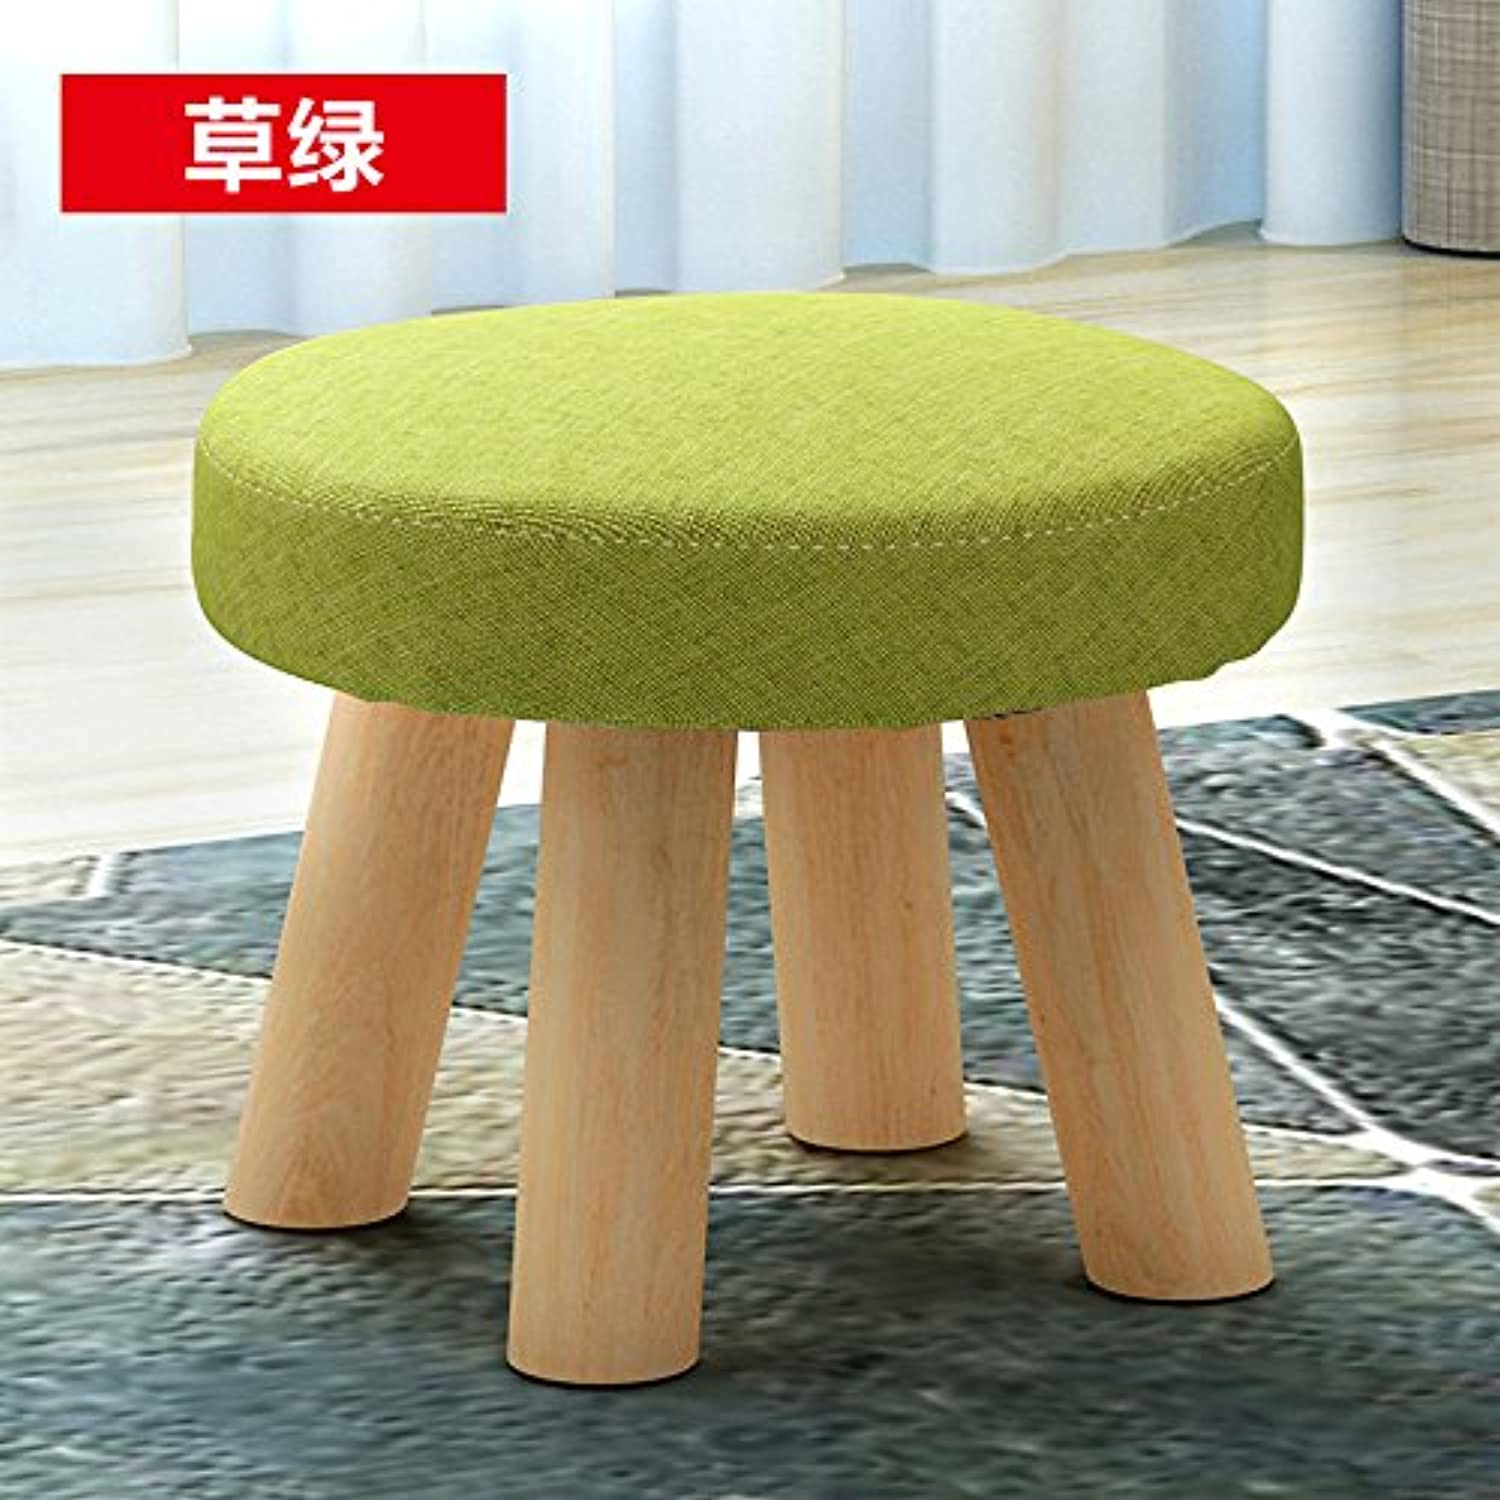 Dana Carrie Small Low Benches, Wooden Fabrics Adult Sofa is a Simple Low stools Home Creative Circle is That Grass Green